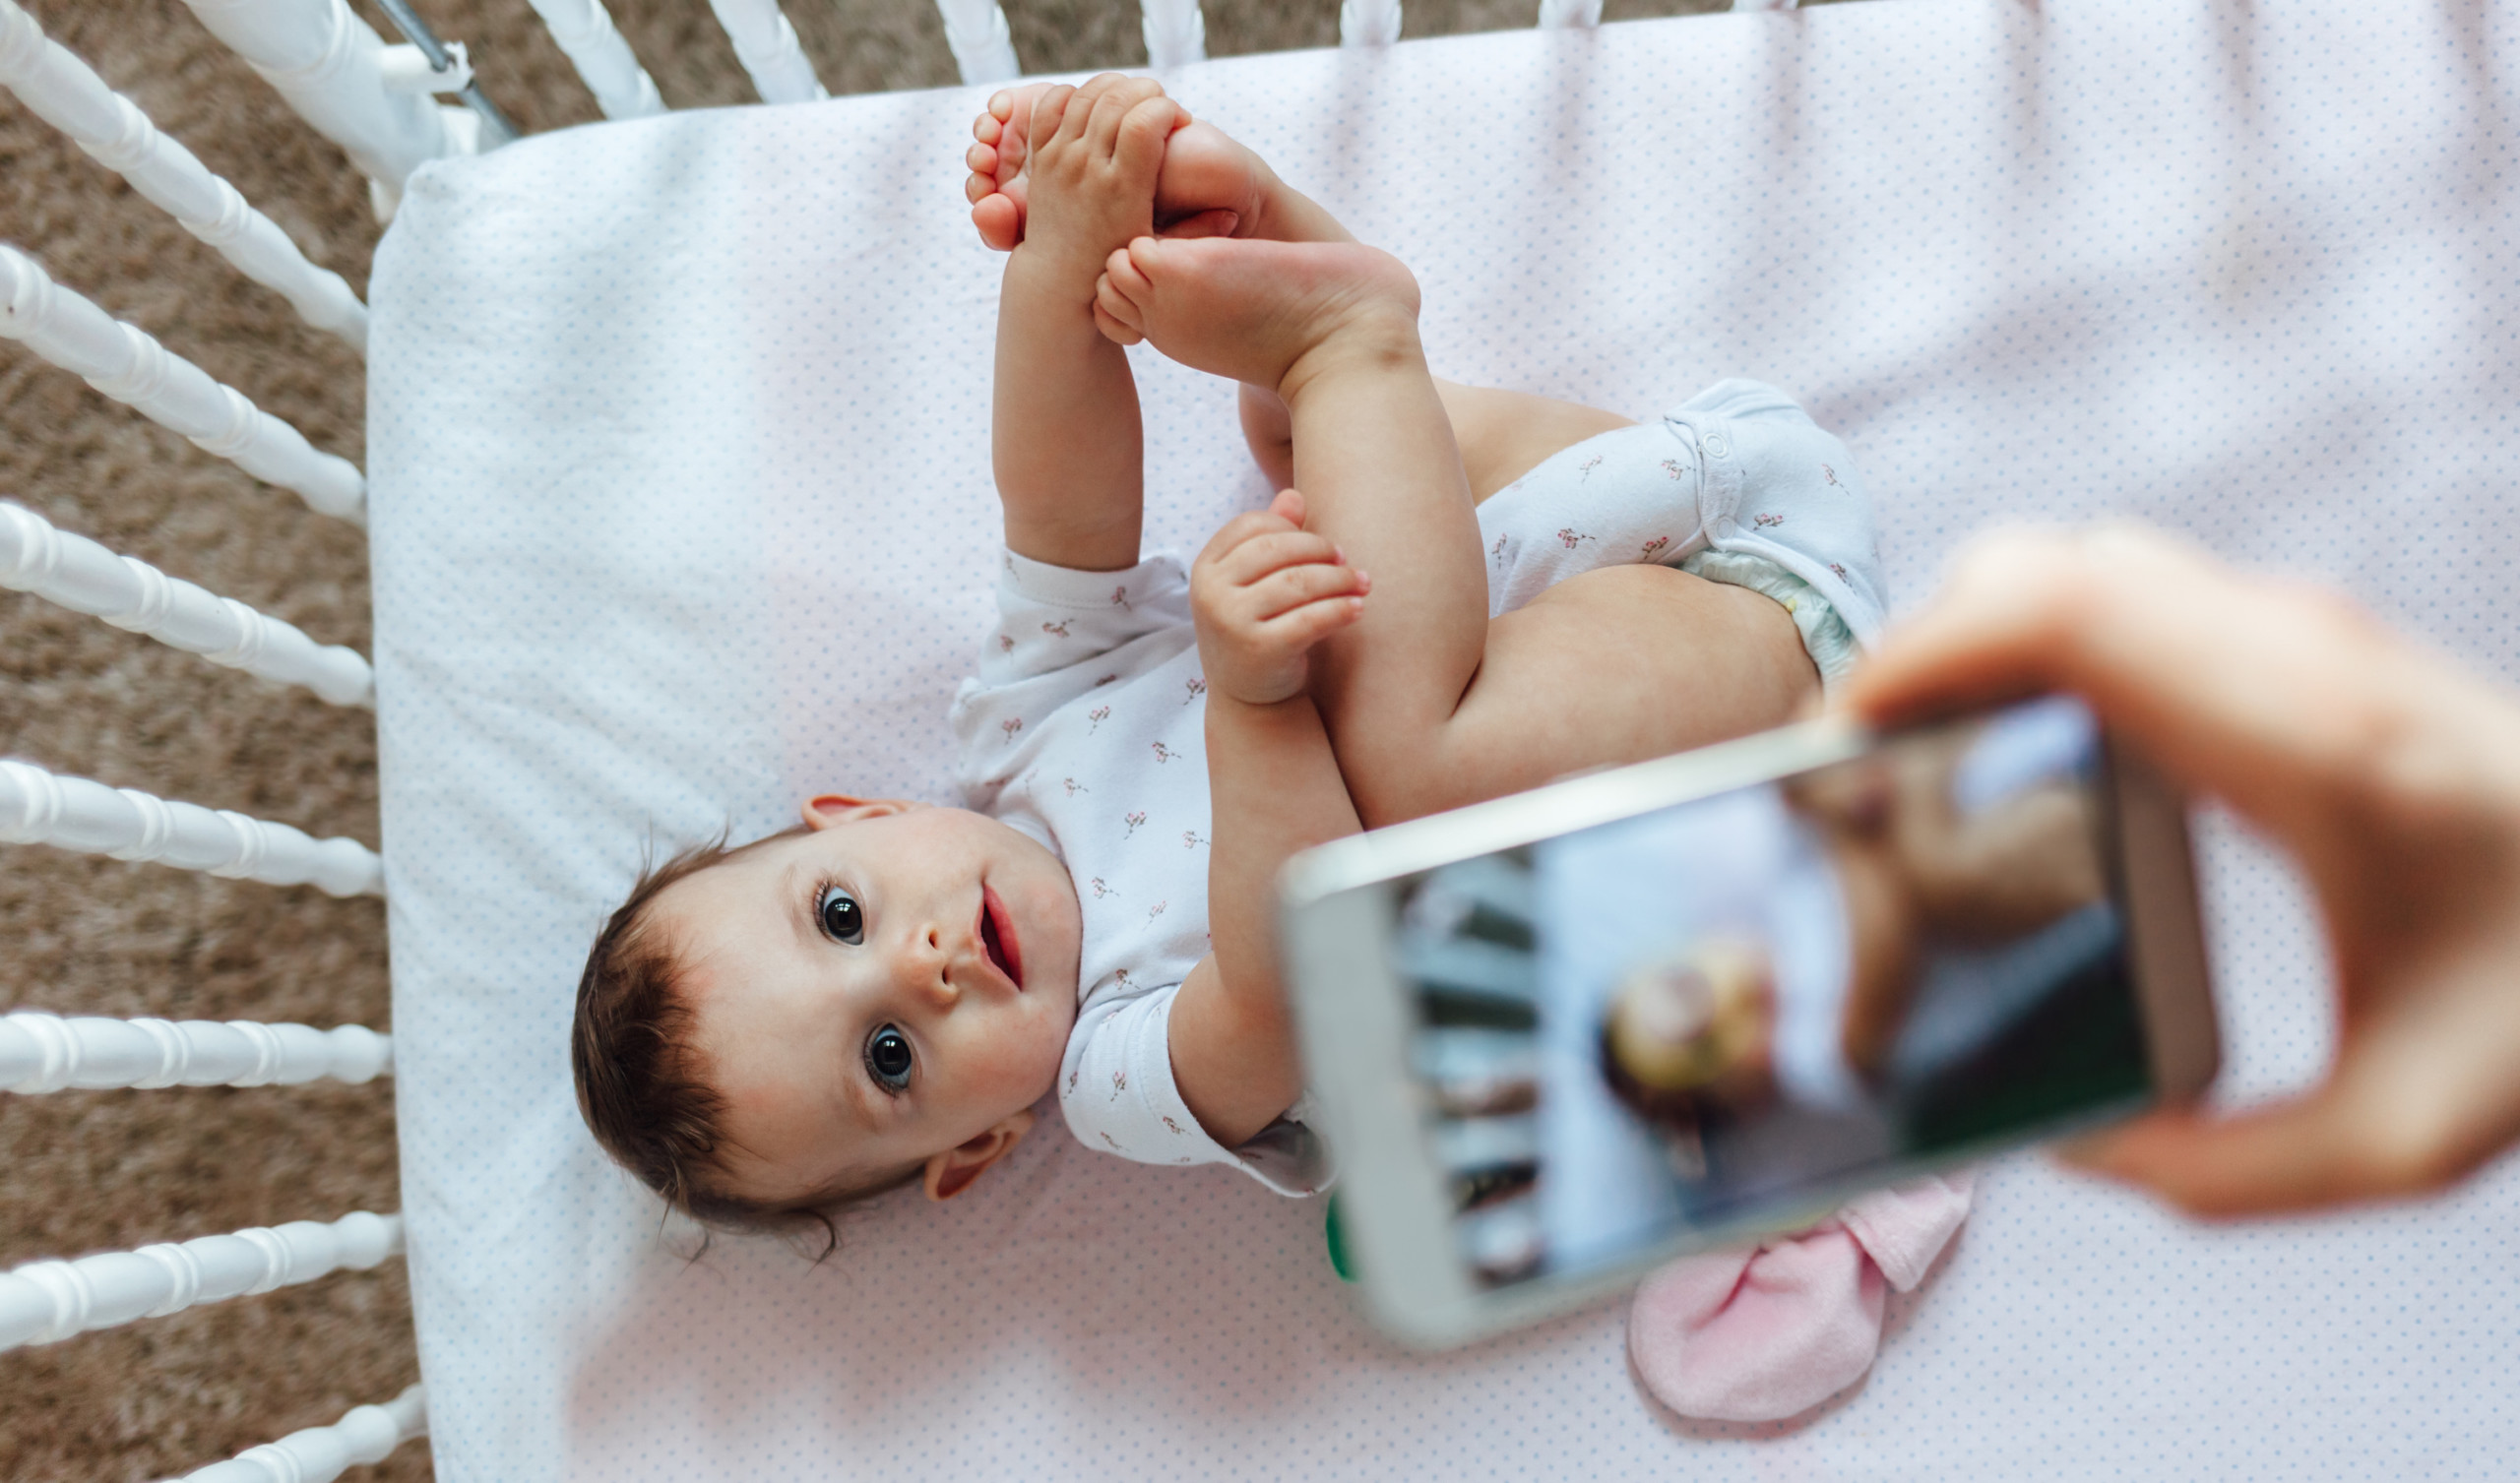 Taking Picture of Baby scaled